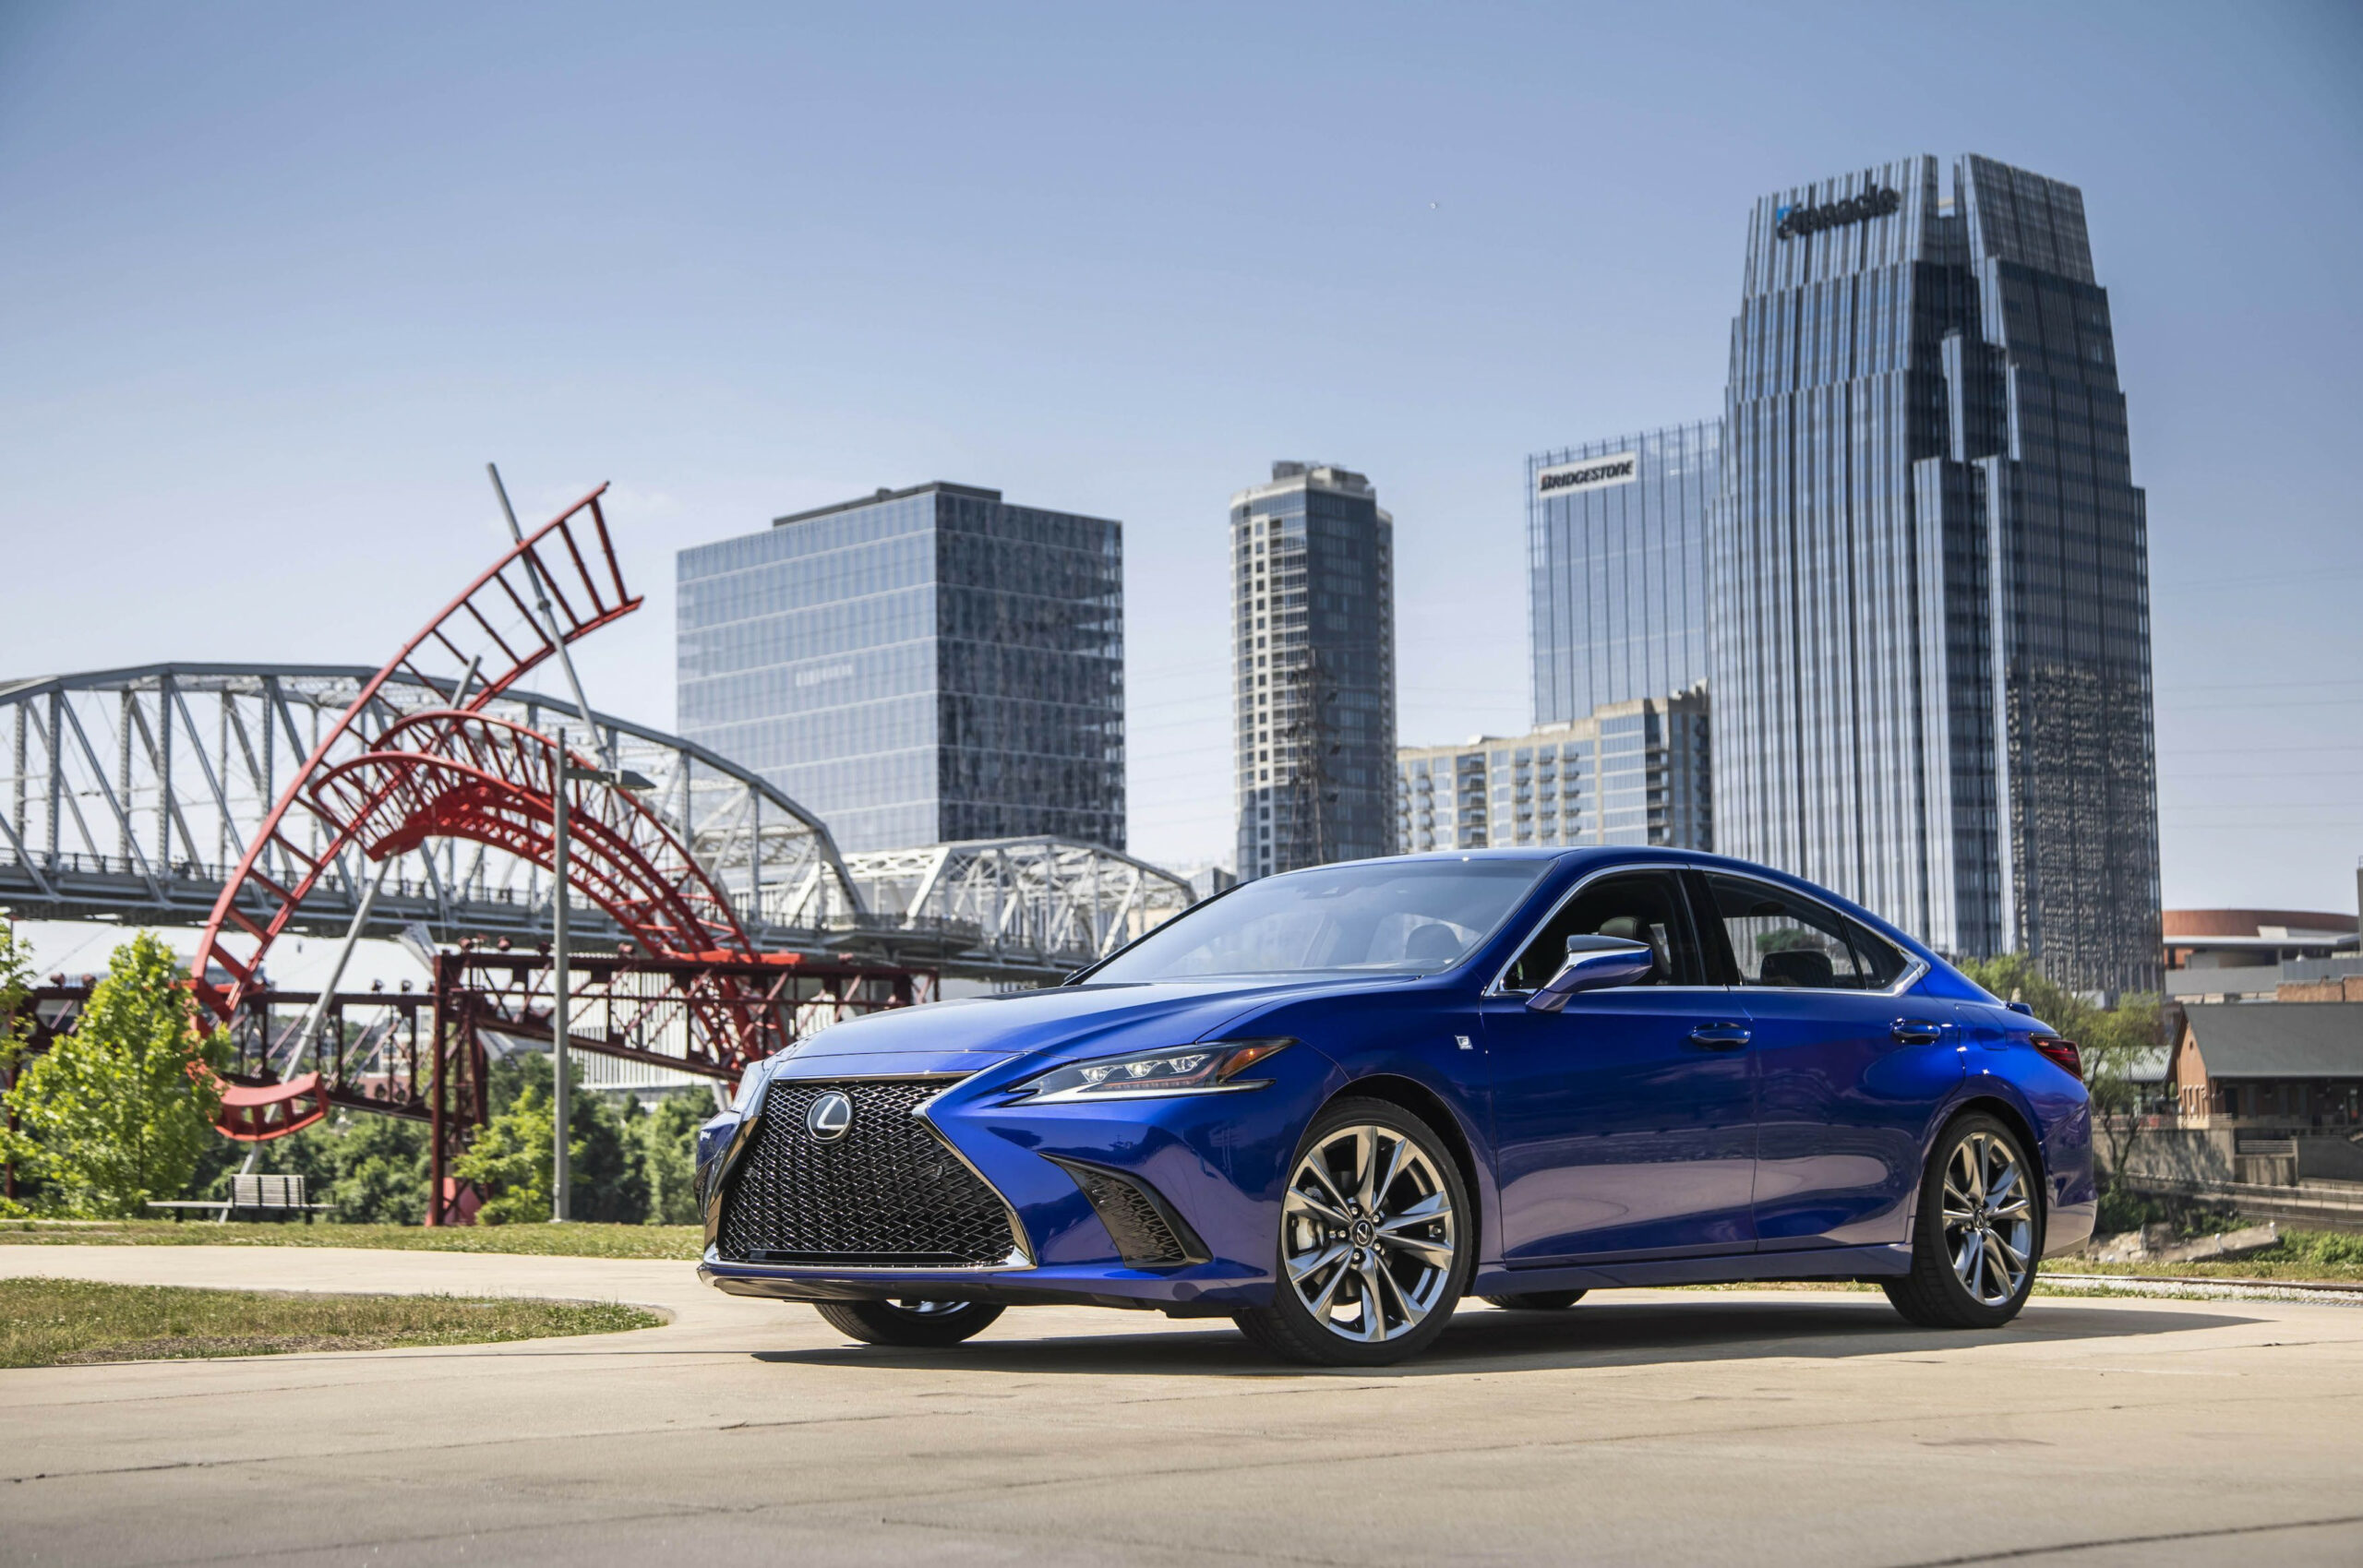 6 Lexus ES Review, Pricing, and Specs